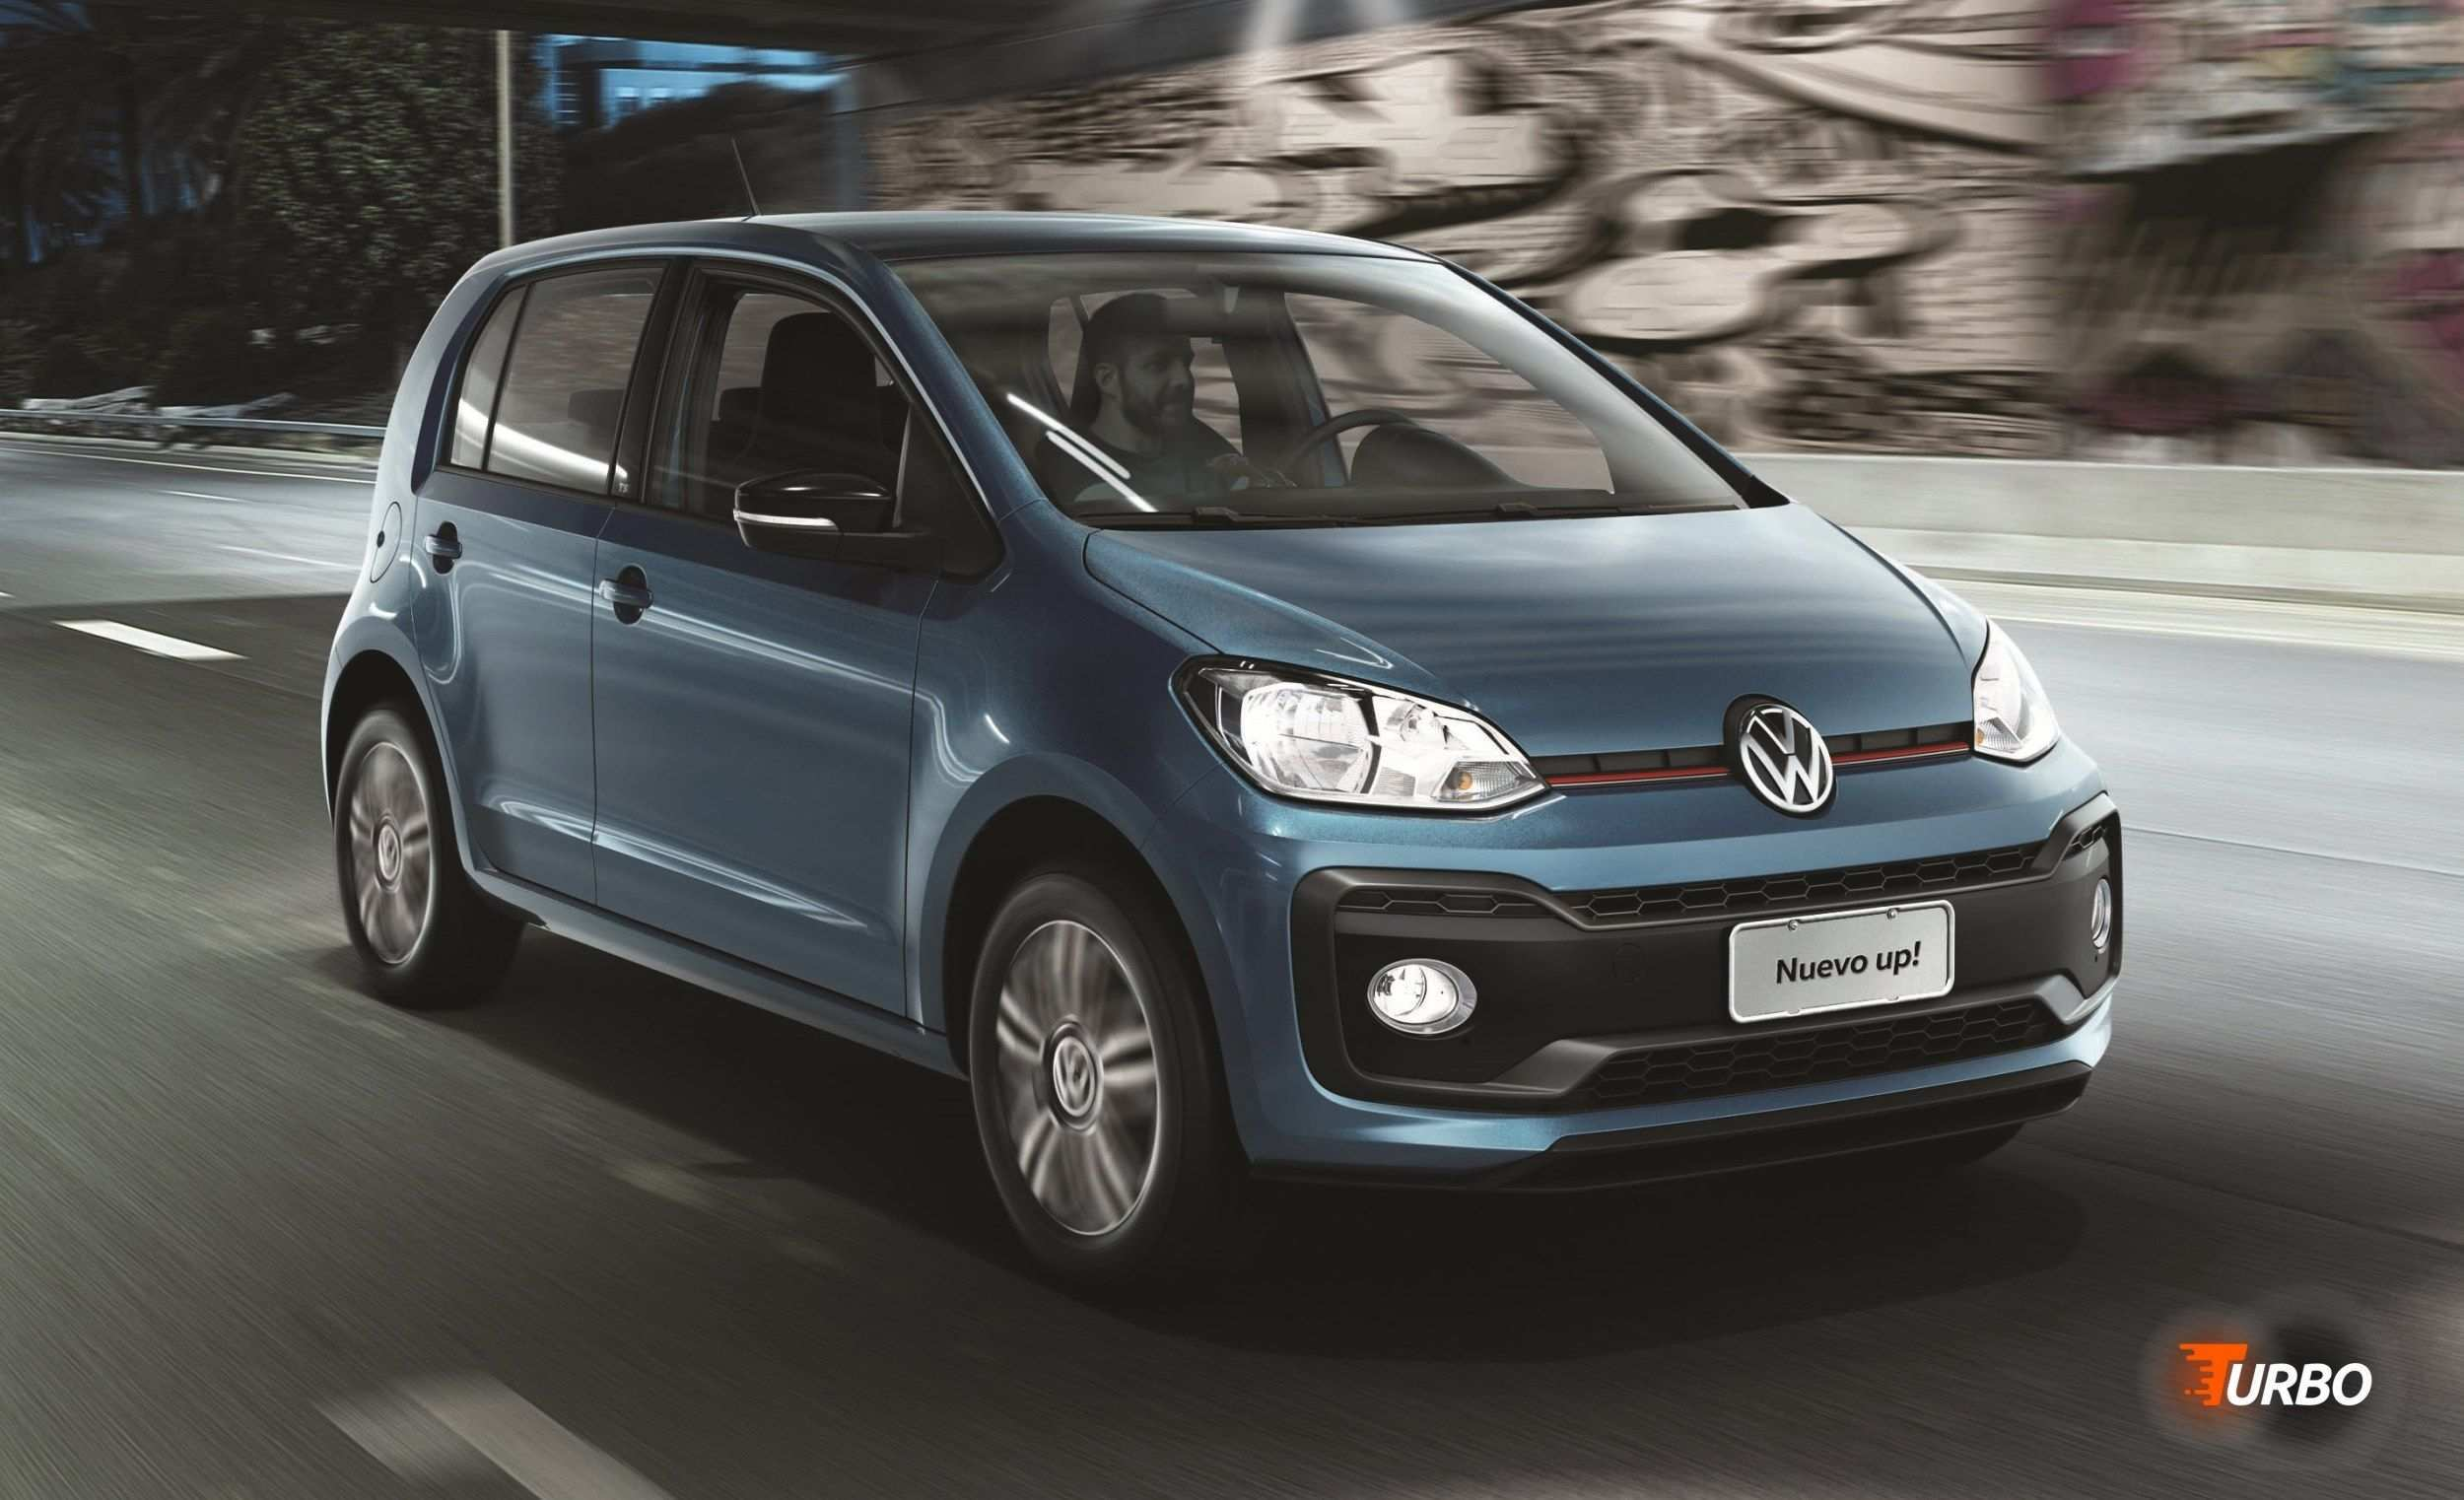 73 New Vw Up Pepper 2019 New Review by Vw Up Pepper 2019